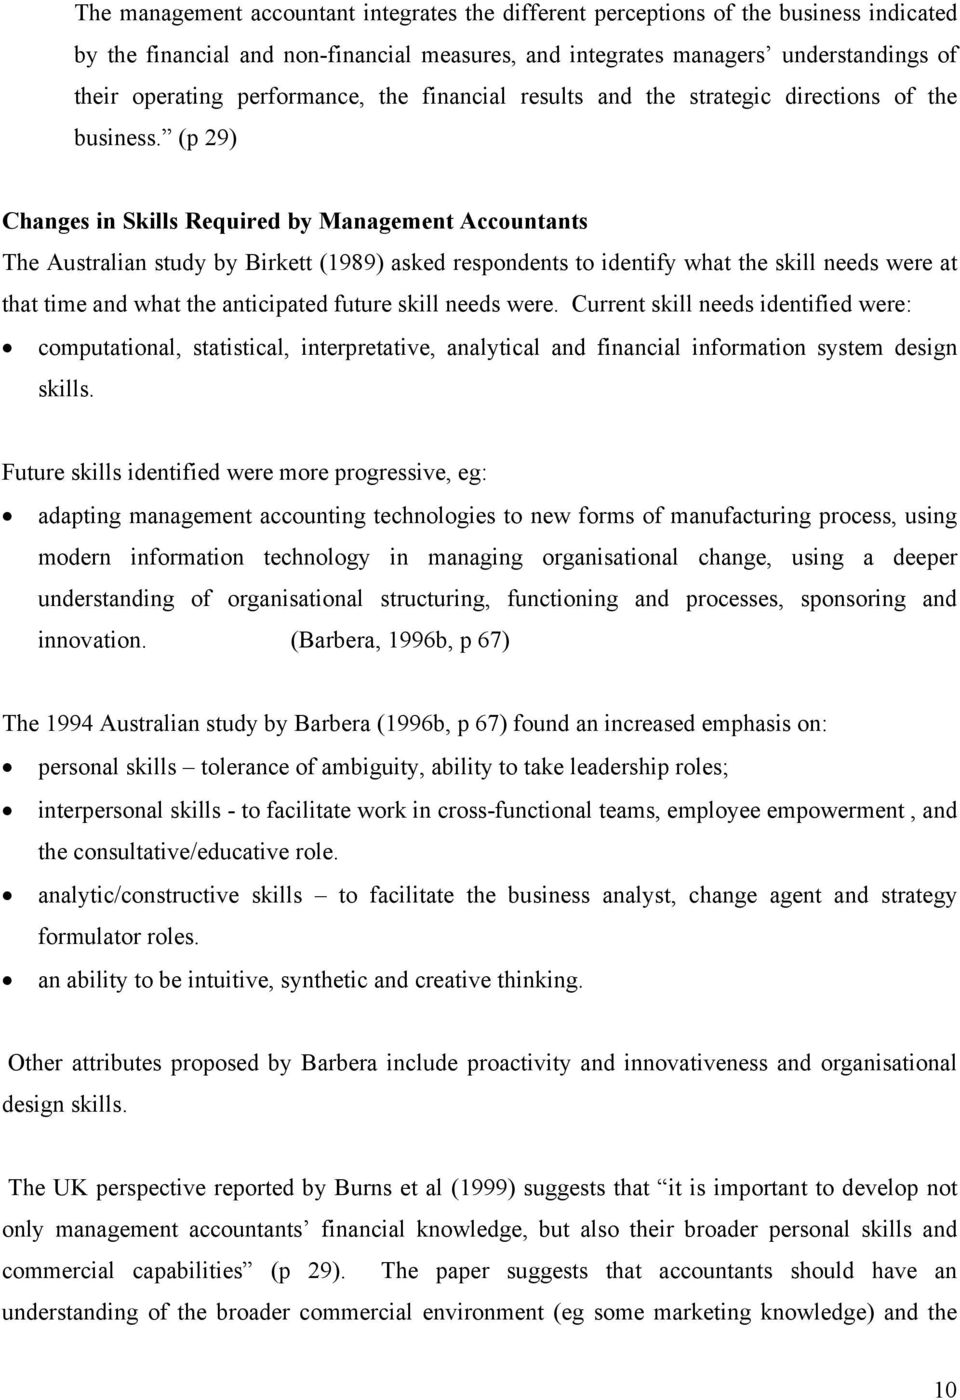 (p 29) Changes in Skills Required by Management Accountants The Australian study by Birkett (1989) asked respondents to identify what the skill needs were at that time and what the anticipated future